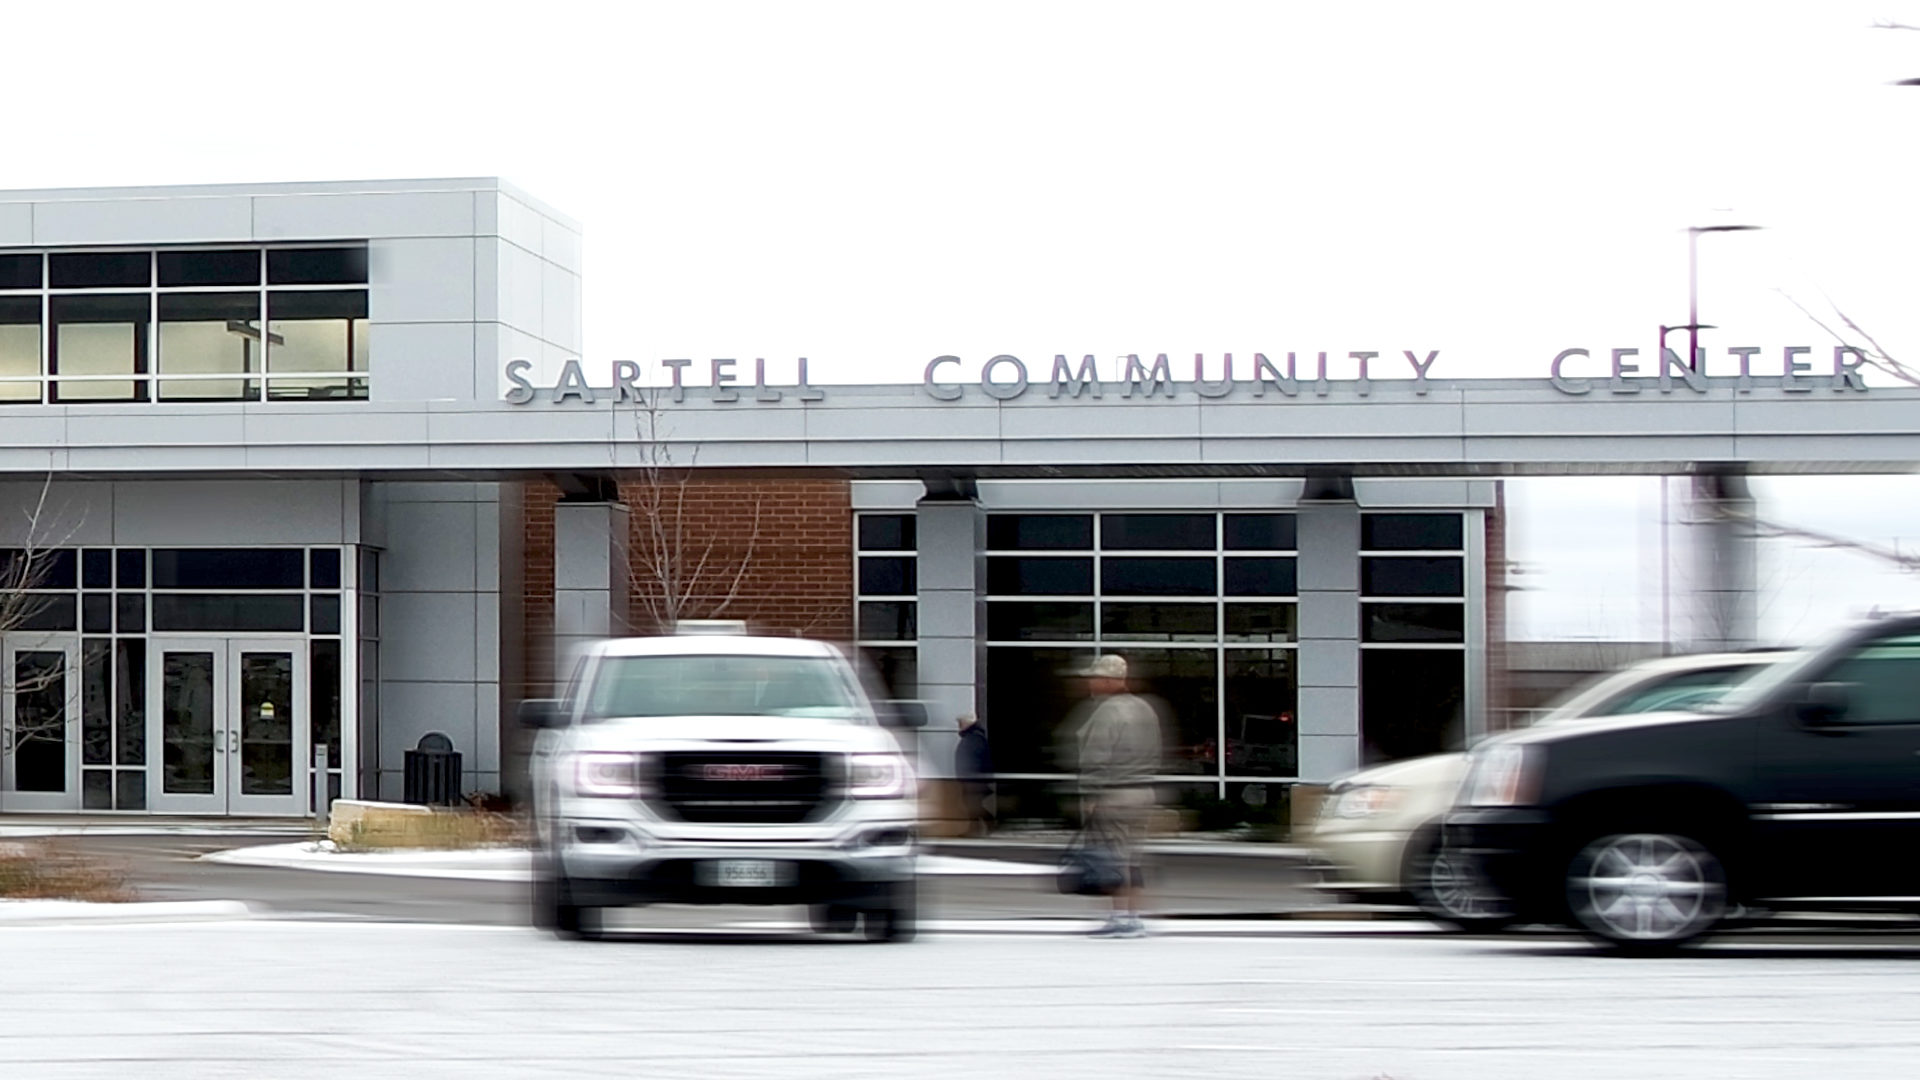 Image: Sartell Community Center